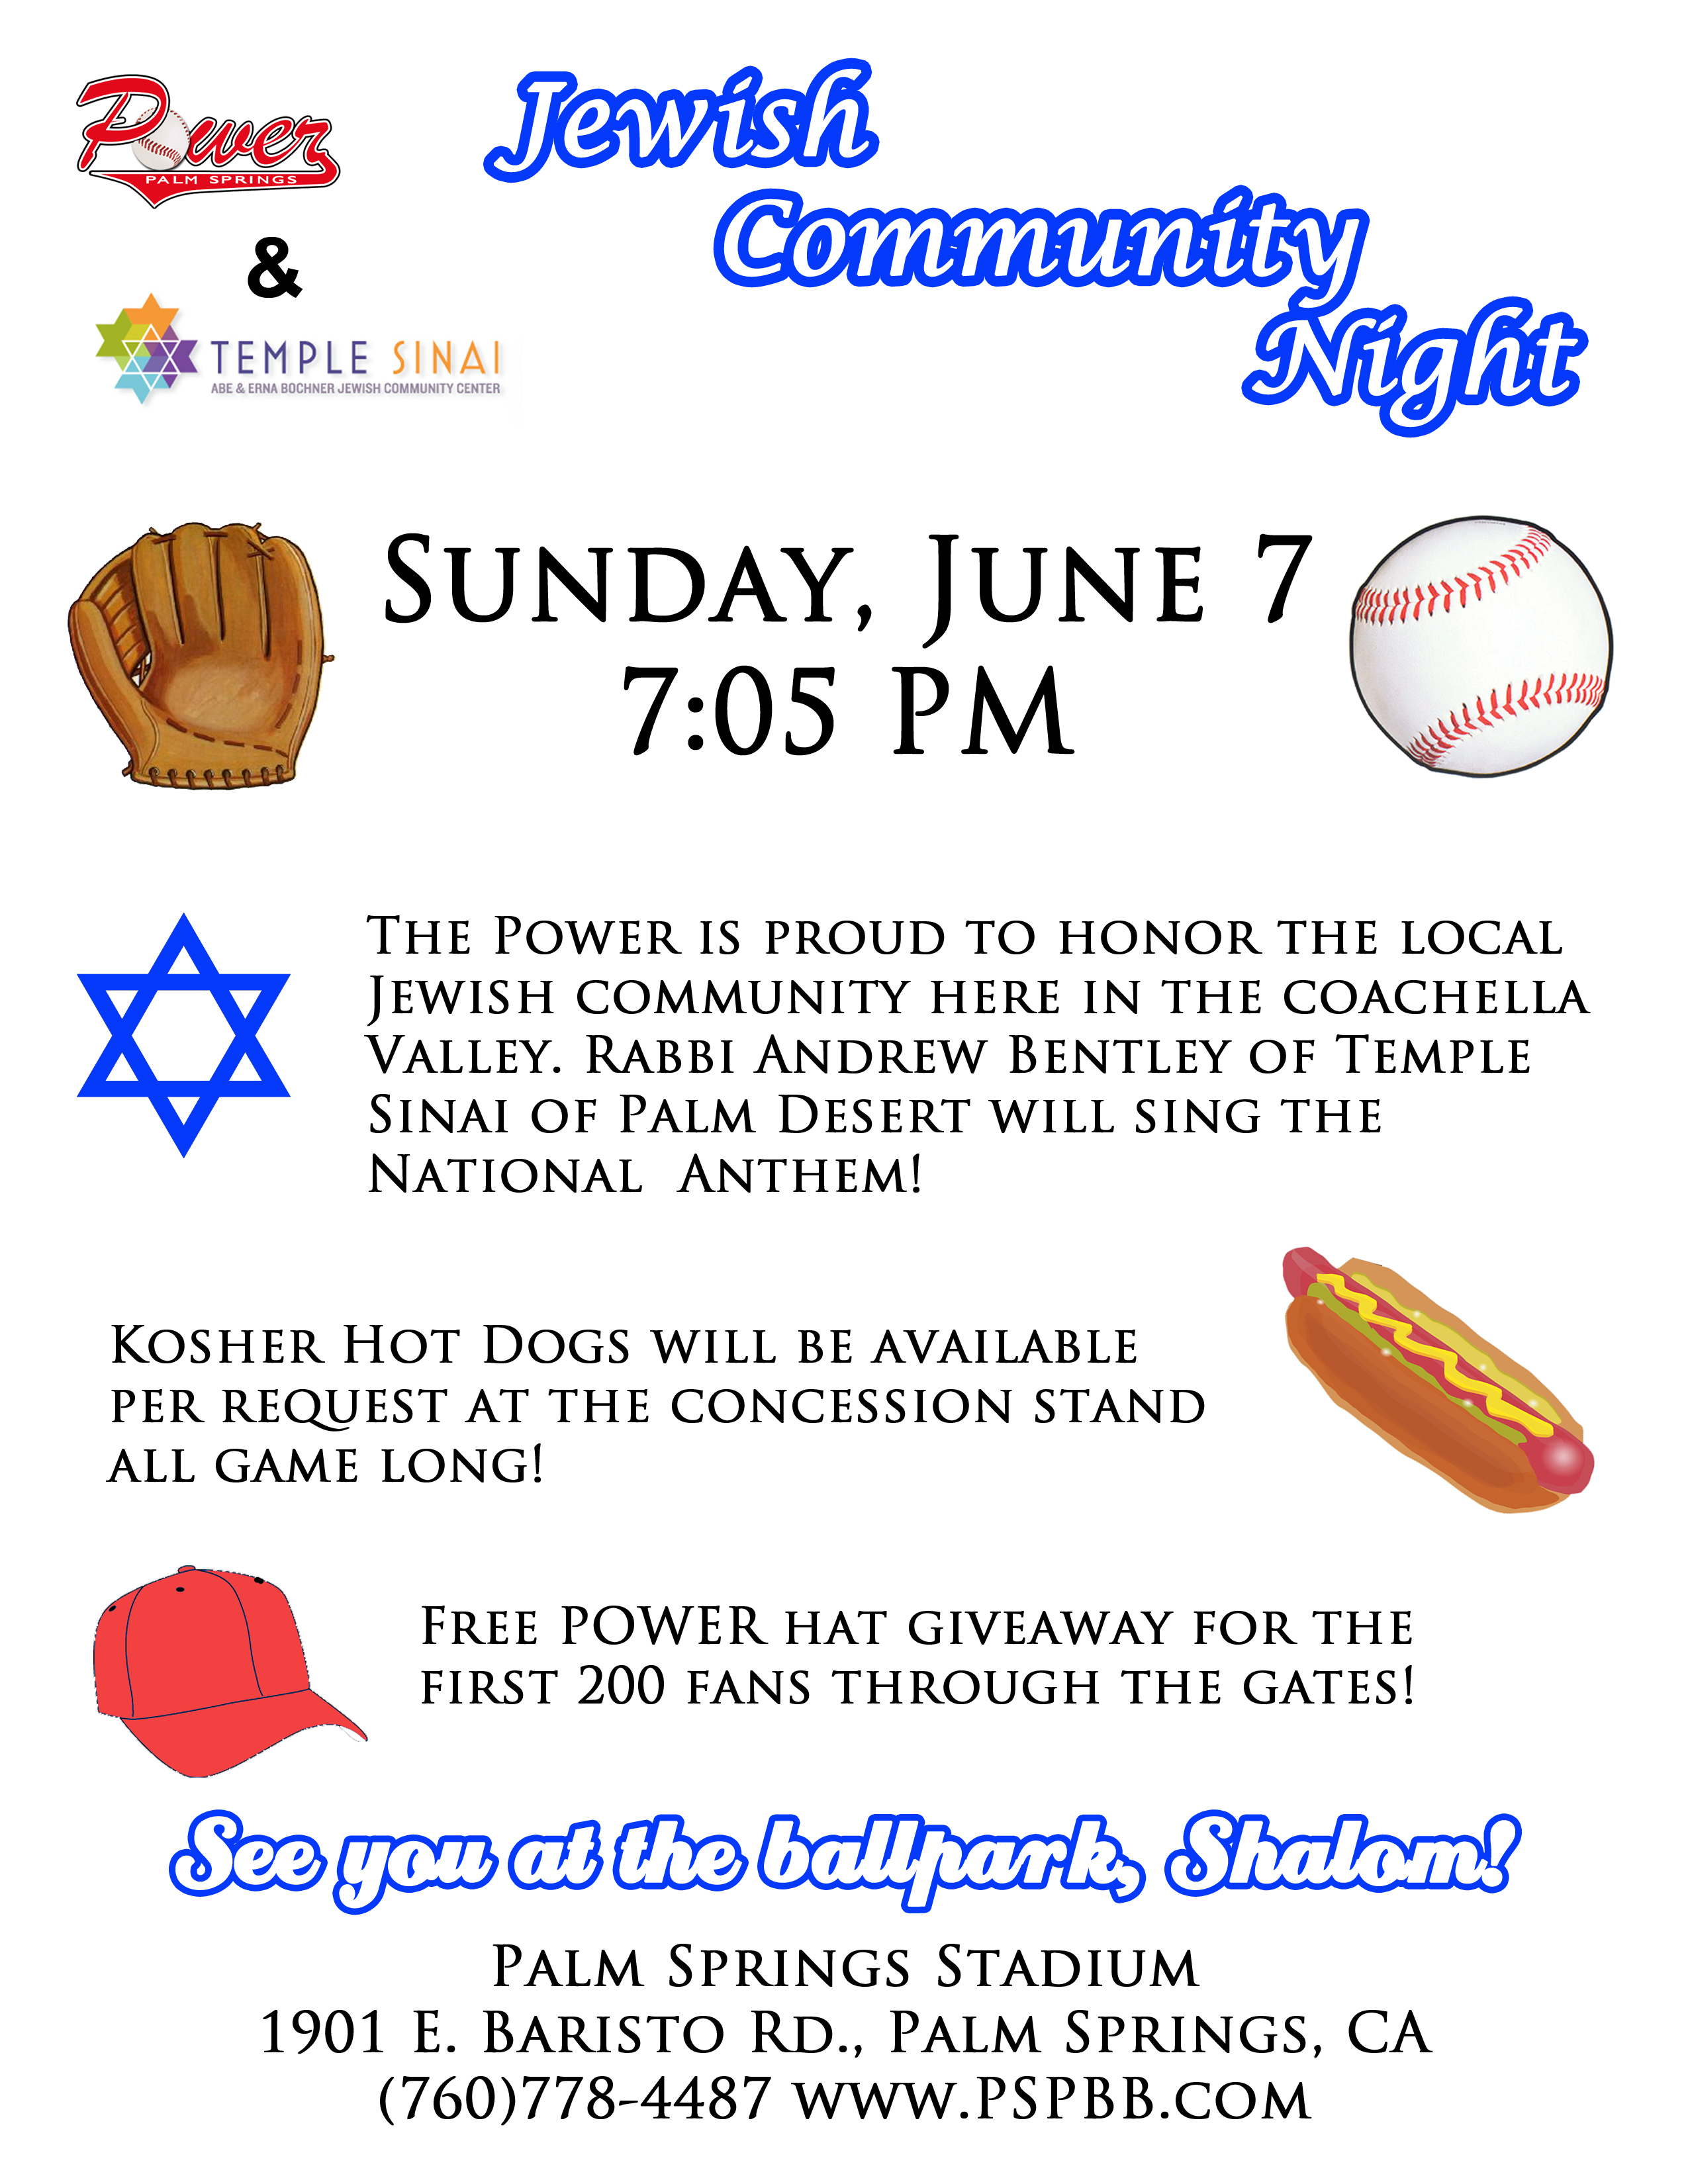 Jewish Community Night